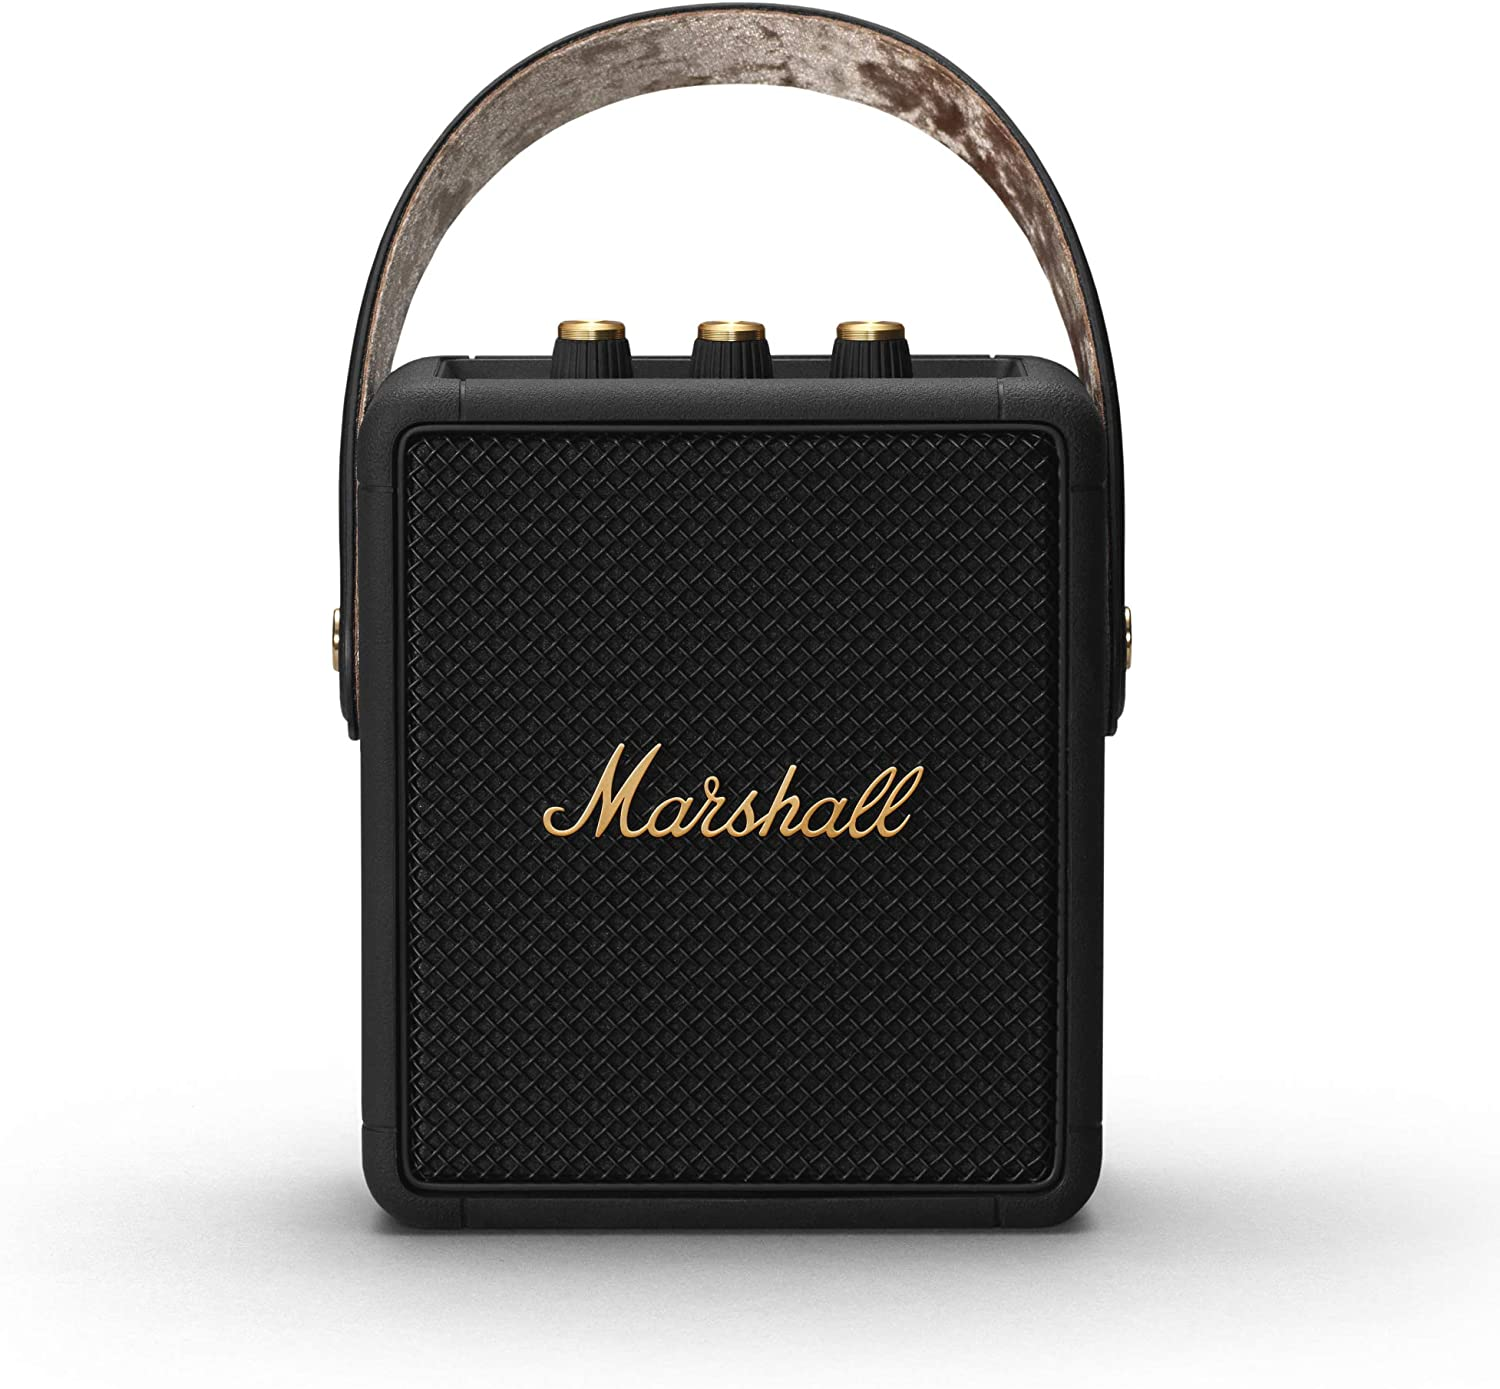 Marshall Stockwell II Bluetooth Altavoz, Negro/Latón (Exclusivo de Amazon)